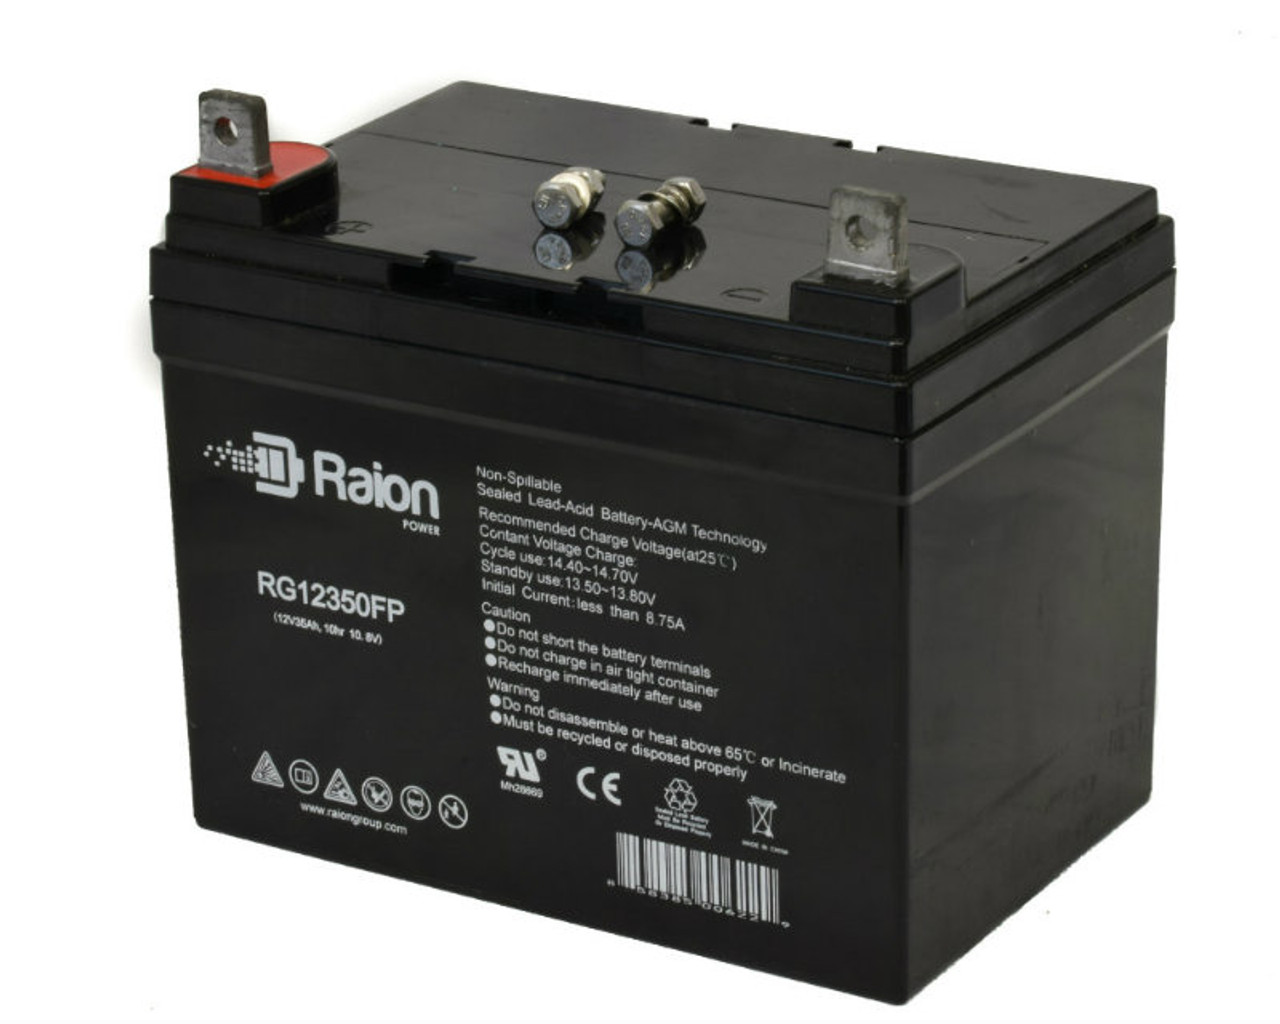 Raion Power RG12350FP Replacement Wheelchair Battery For Bruno Cub 32 (1 Pack)